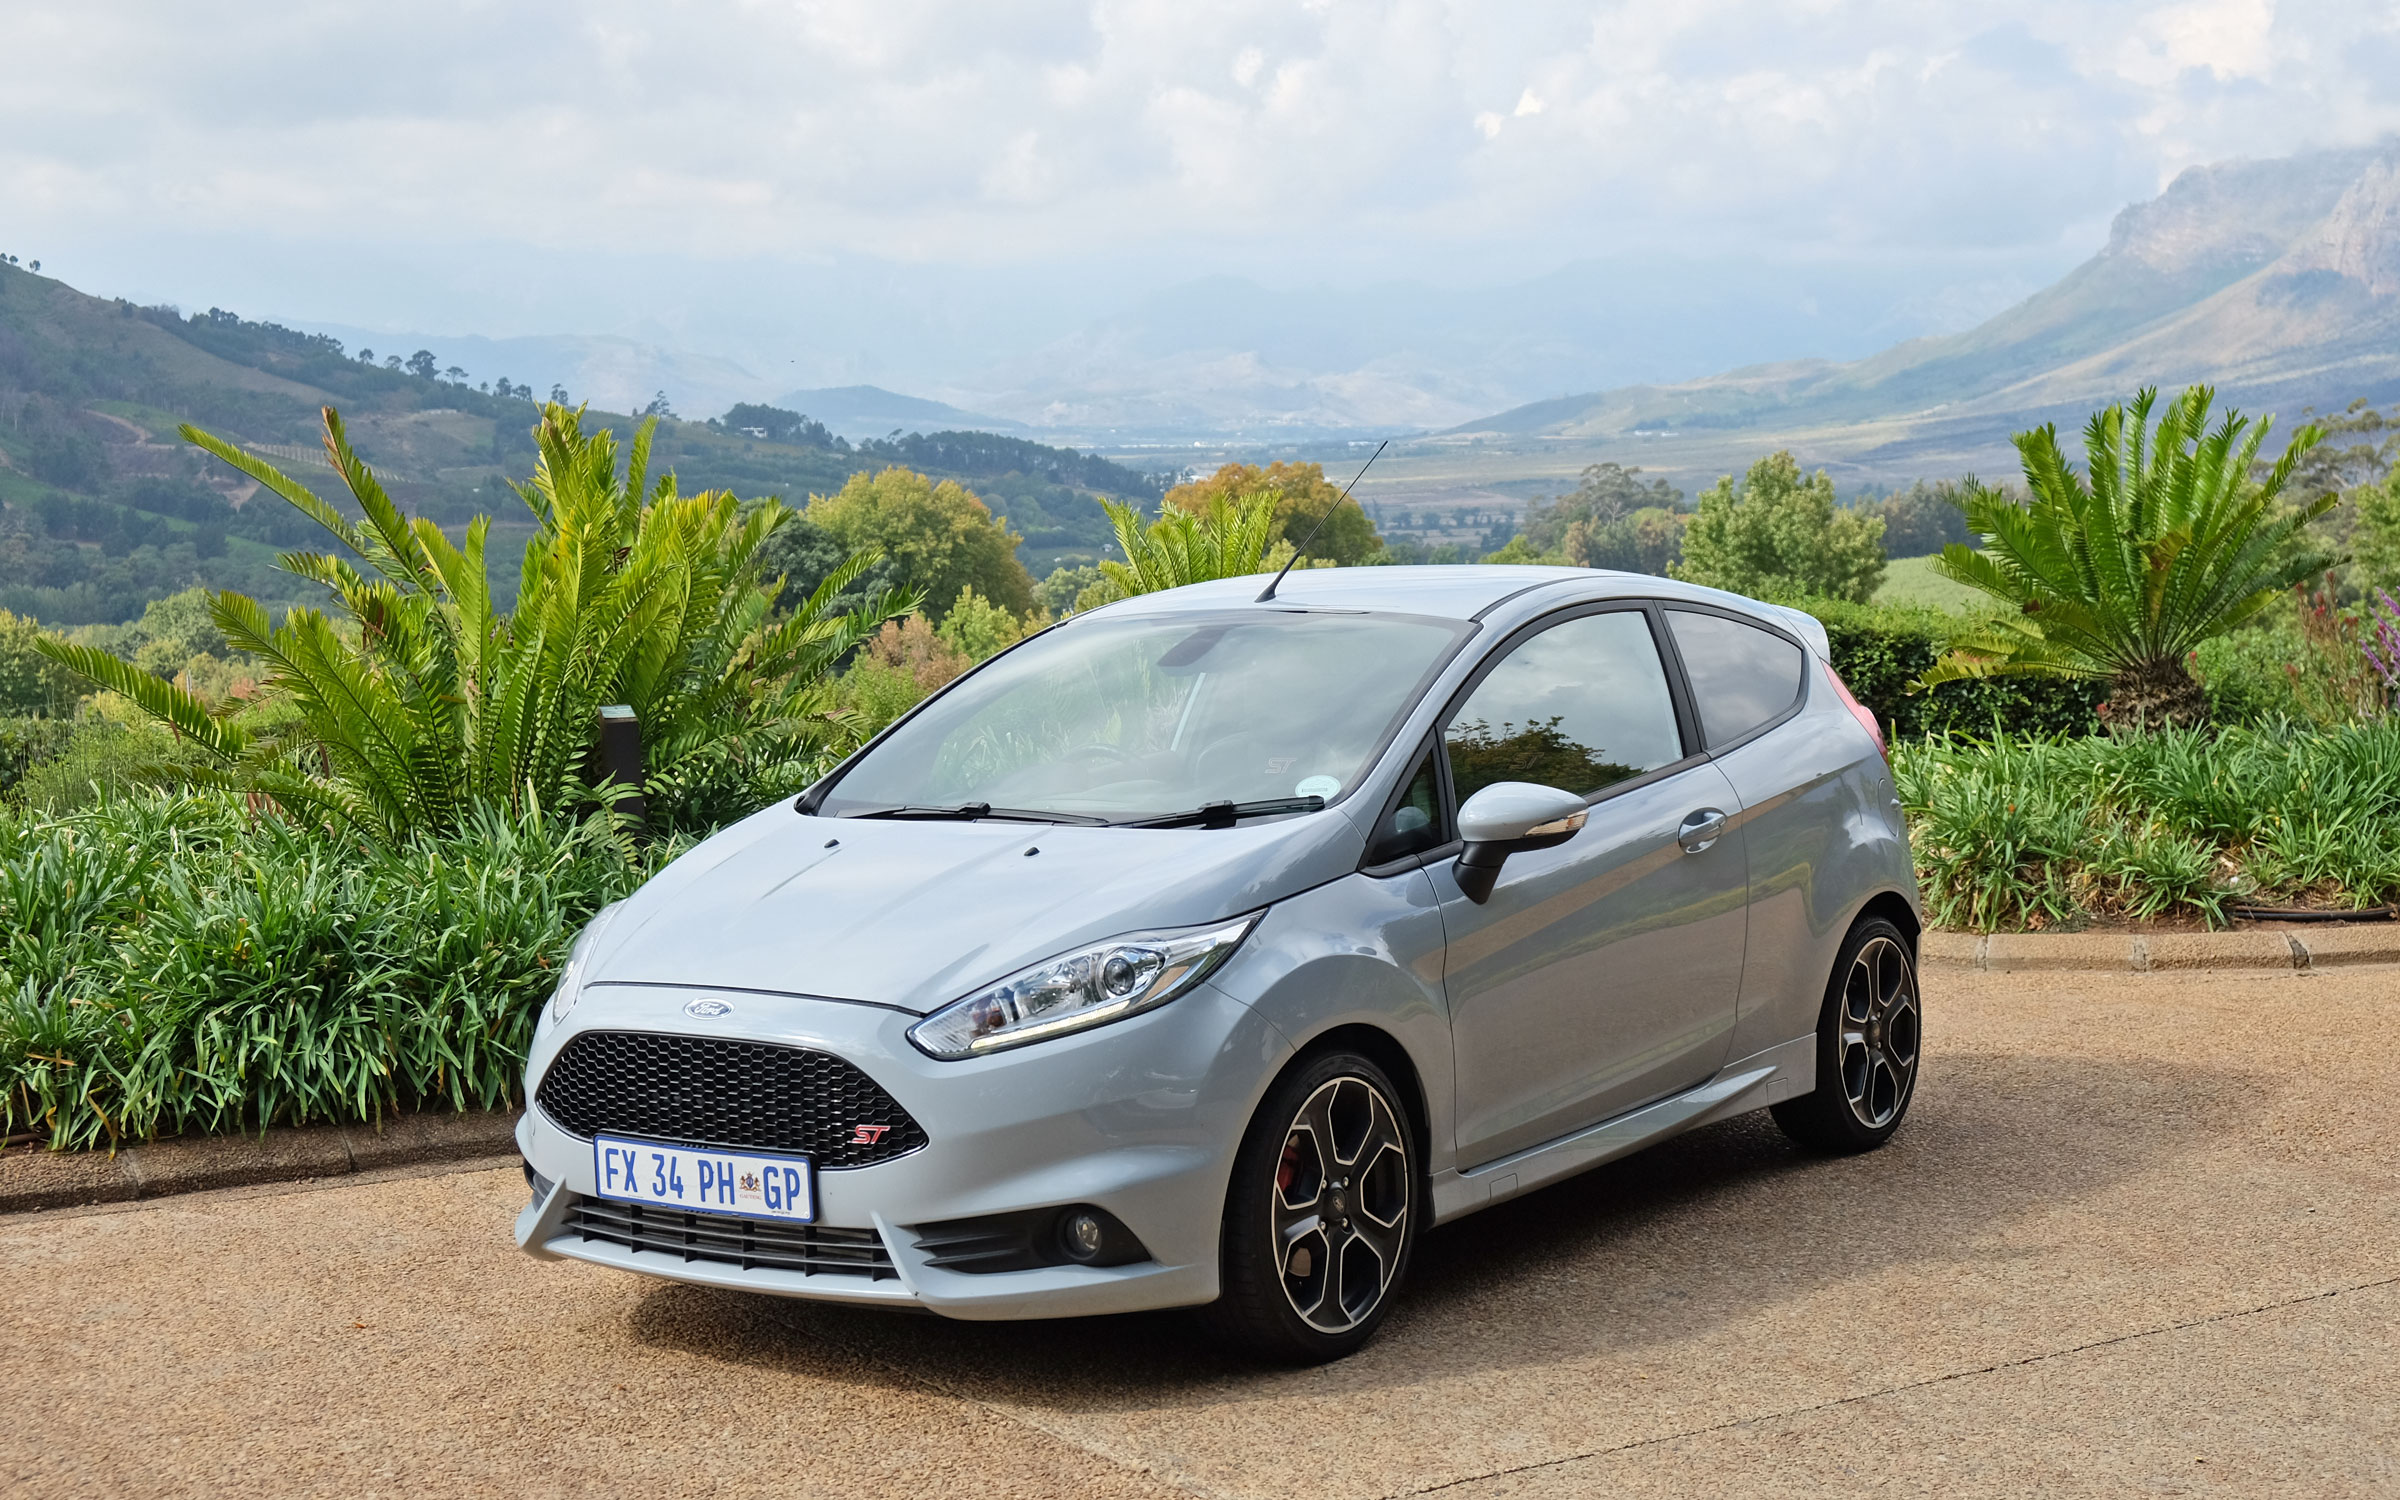 ford fiesta st200 limited edition review wheelswrite. Black Bedroom Furniture Sets. Home Design Ideas